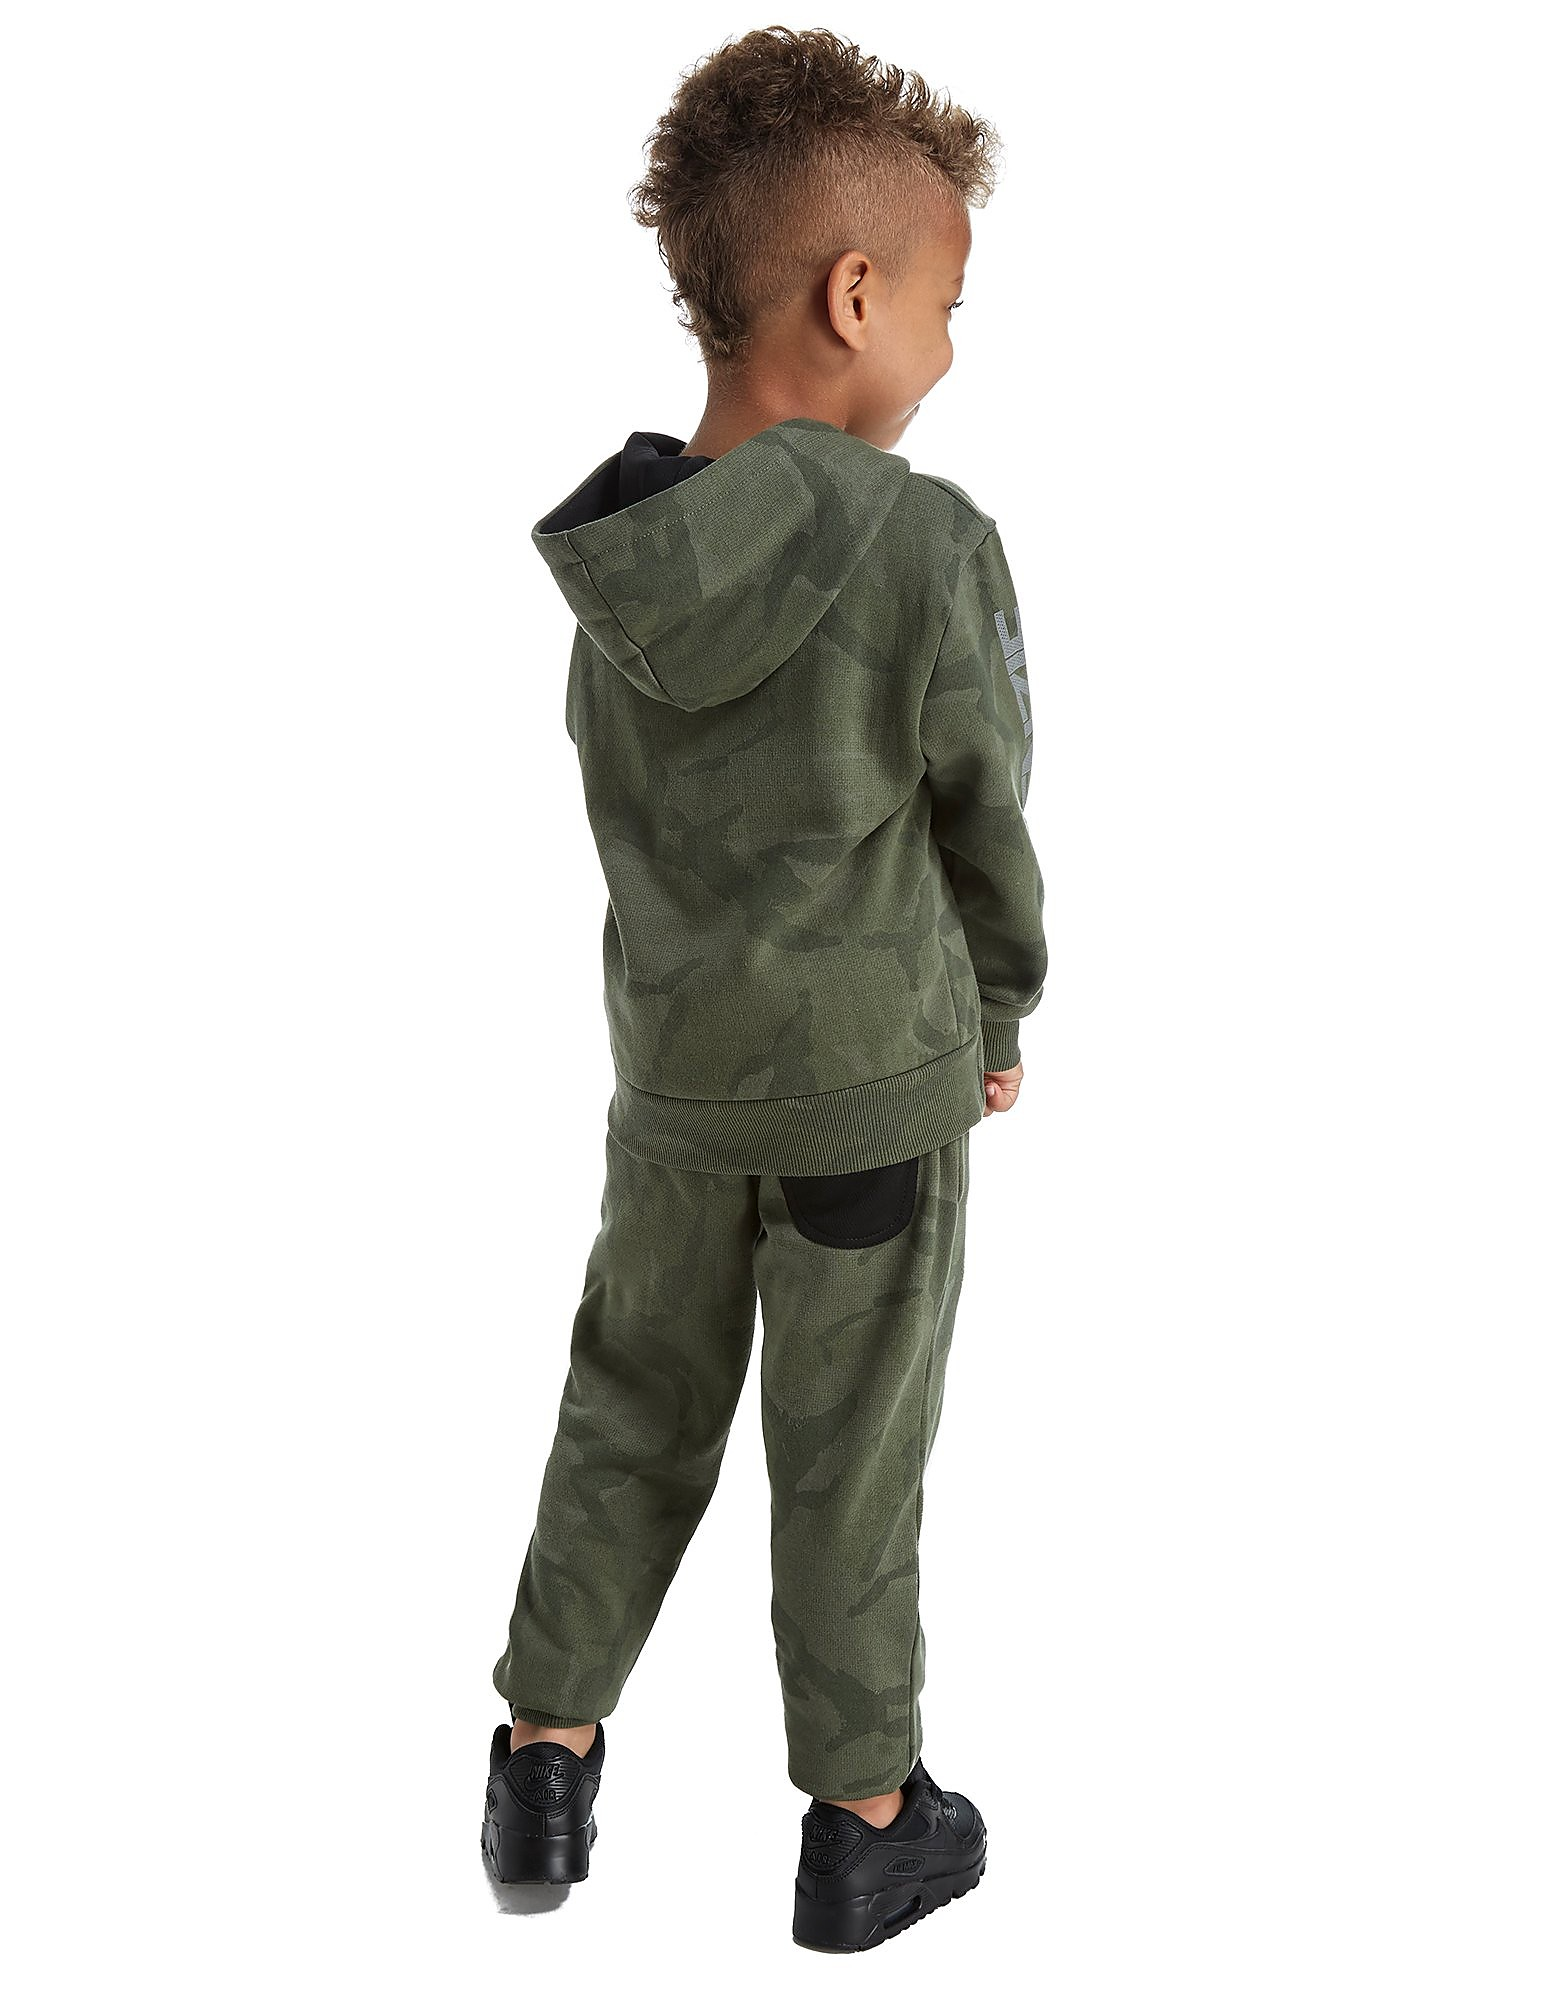 McKenzie Richie Full Zip Suit Children's